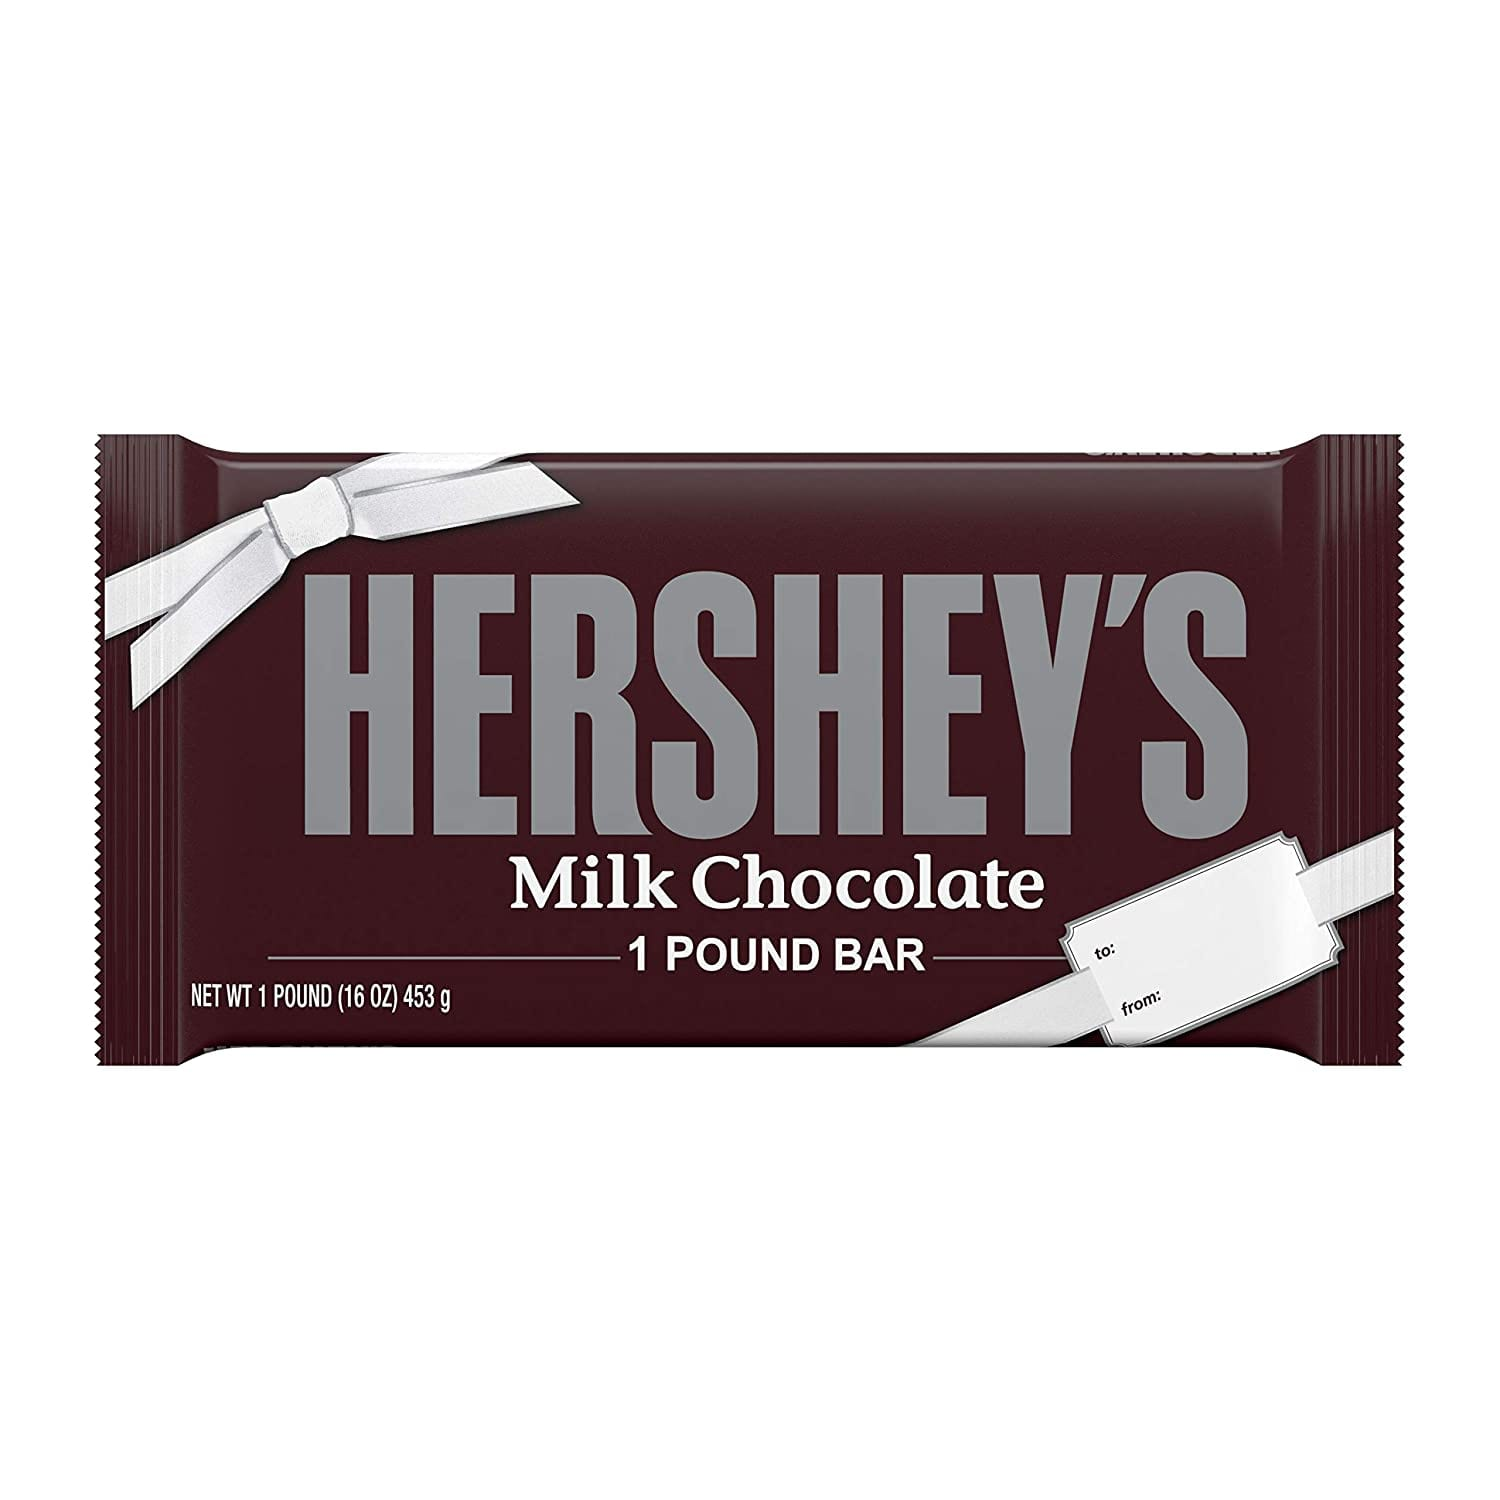 Amazon.com : HERSHEY'S Milk Chocolate Candy, Valentine's Day Gift, 1 Lb. Bar : Candy And Chocolate Bars : Grocery & Gourmet Food $6.77